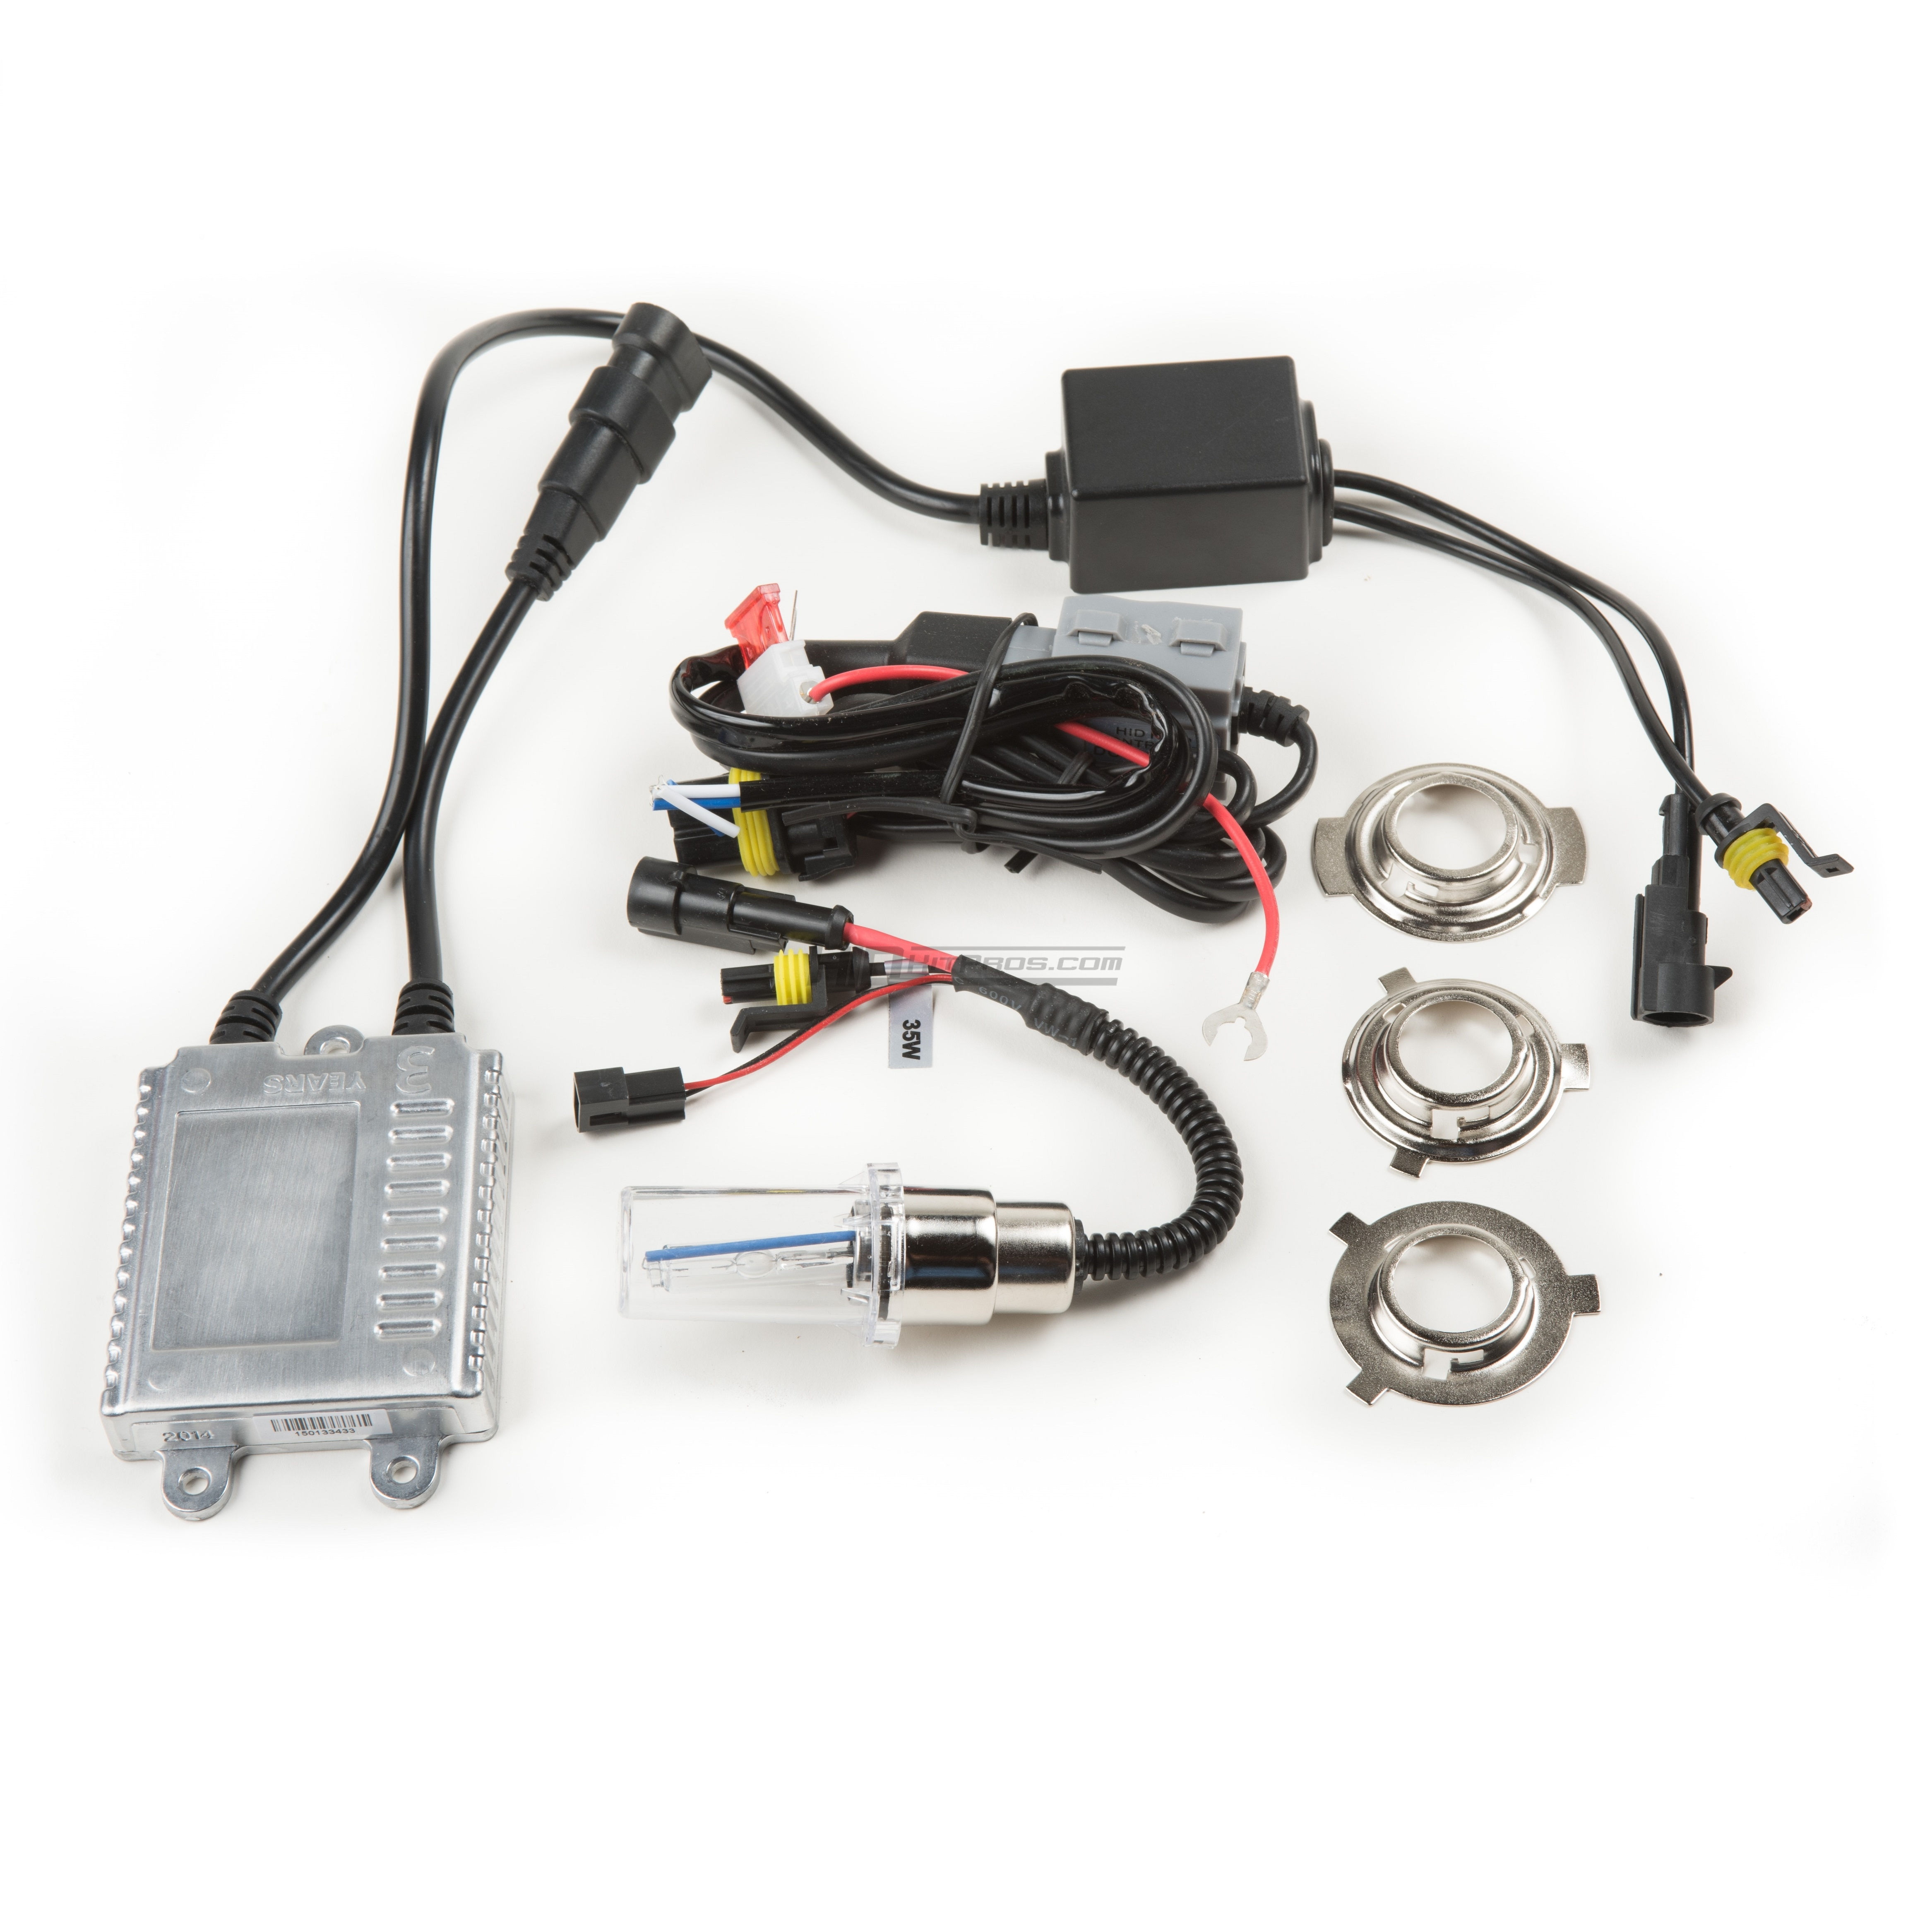 Hylux H6 Xenon Hid Kit Pros Controller Wiring Harness